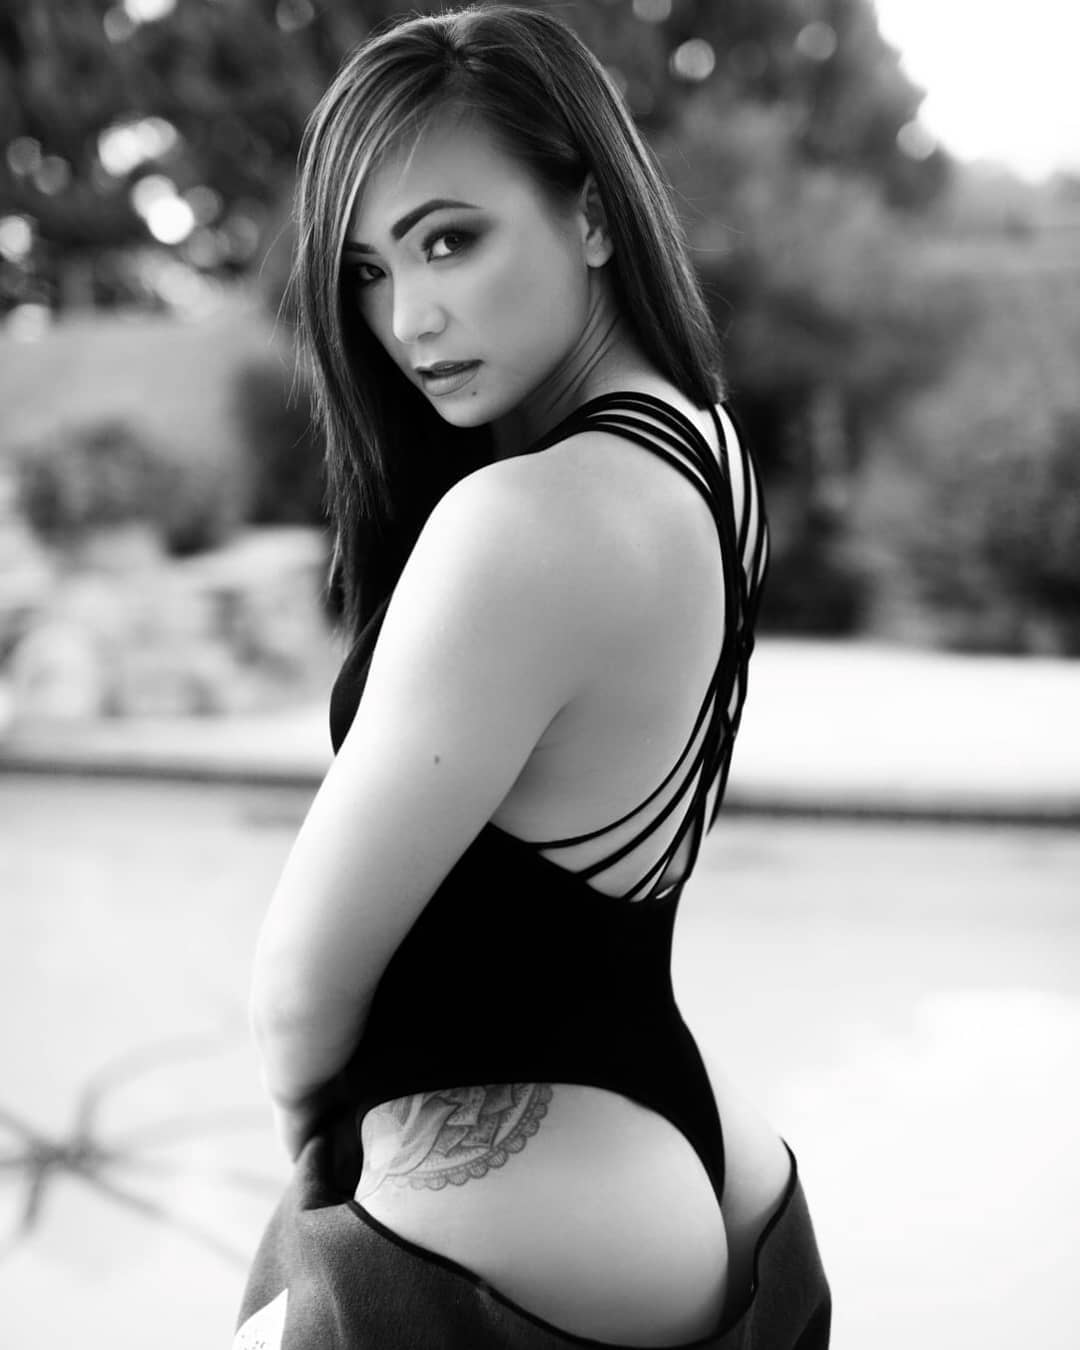 60+ Hot Pictures Of Michelle Waterson Prove She Is The